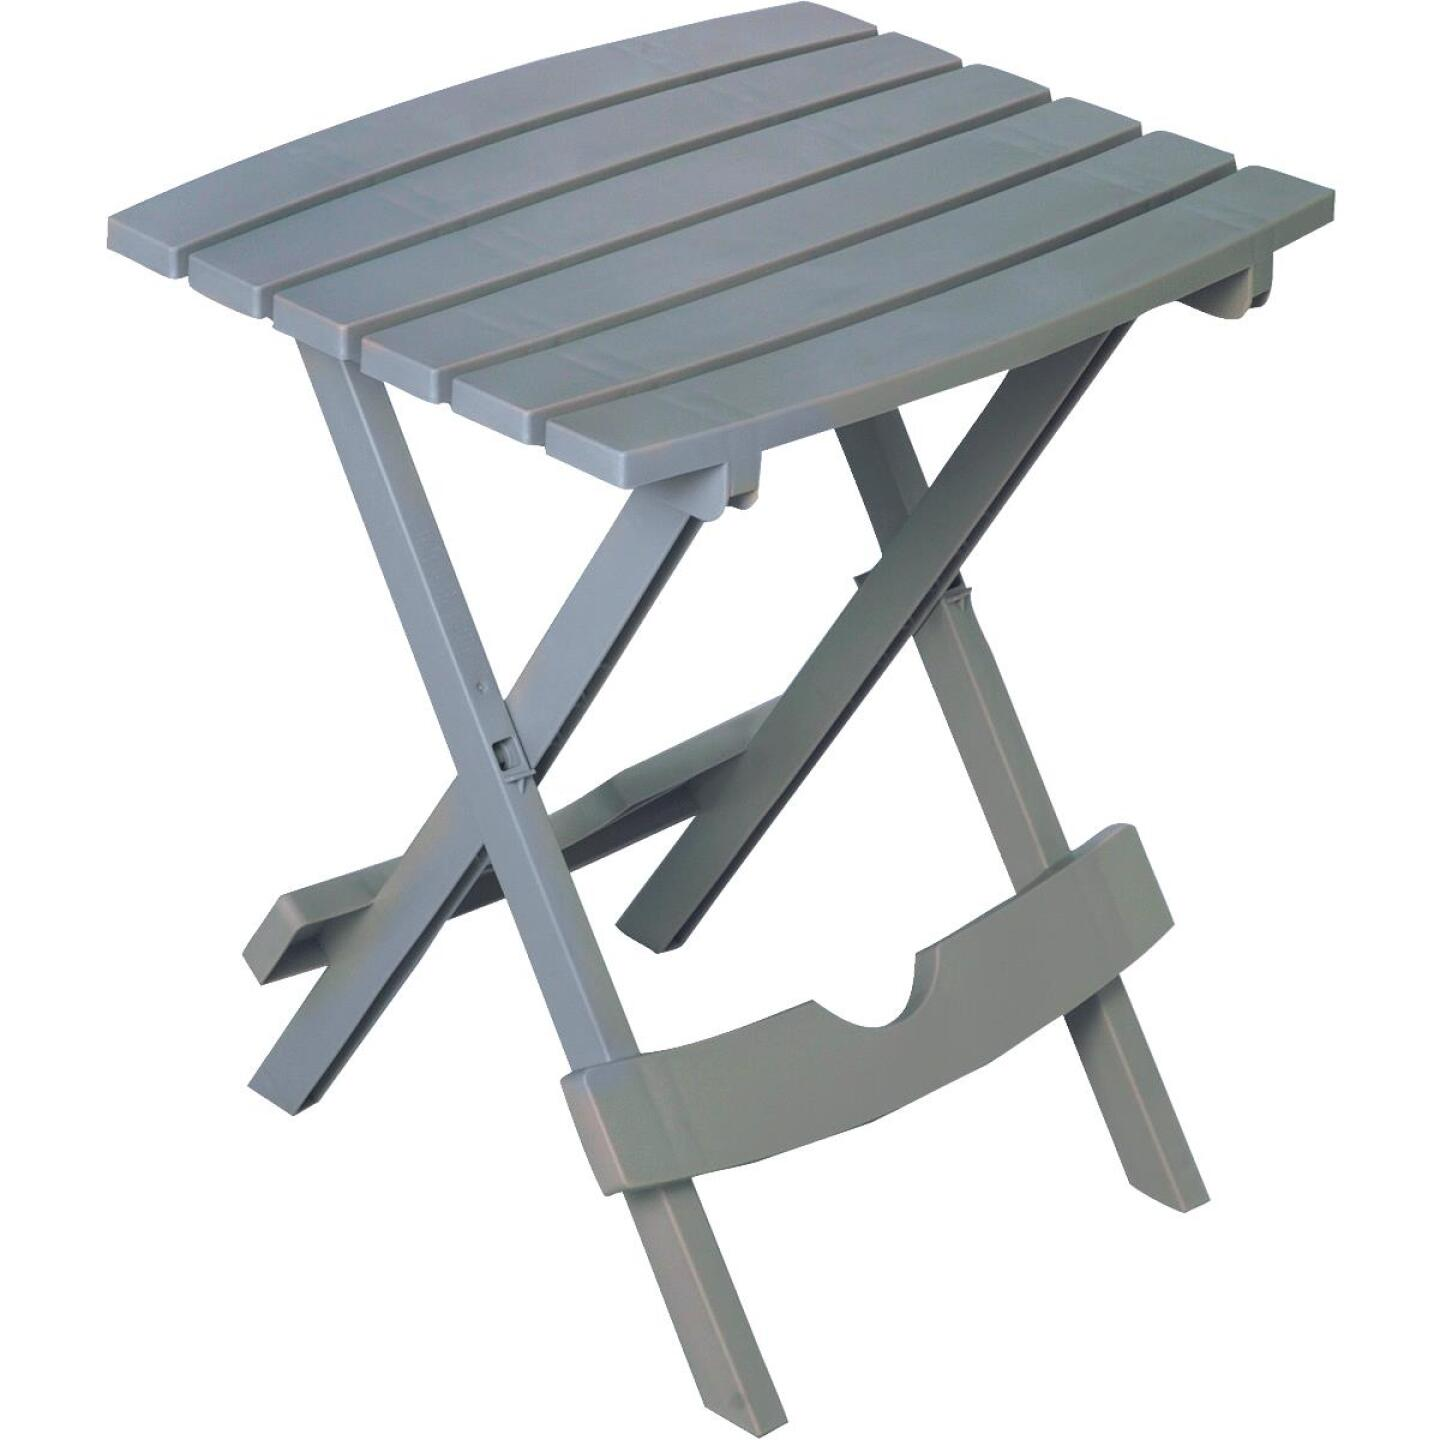 Adams Quik-Fold Gray 15 In. x 17.5 In. Rectangle Resin Folding Side Table Image 1